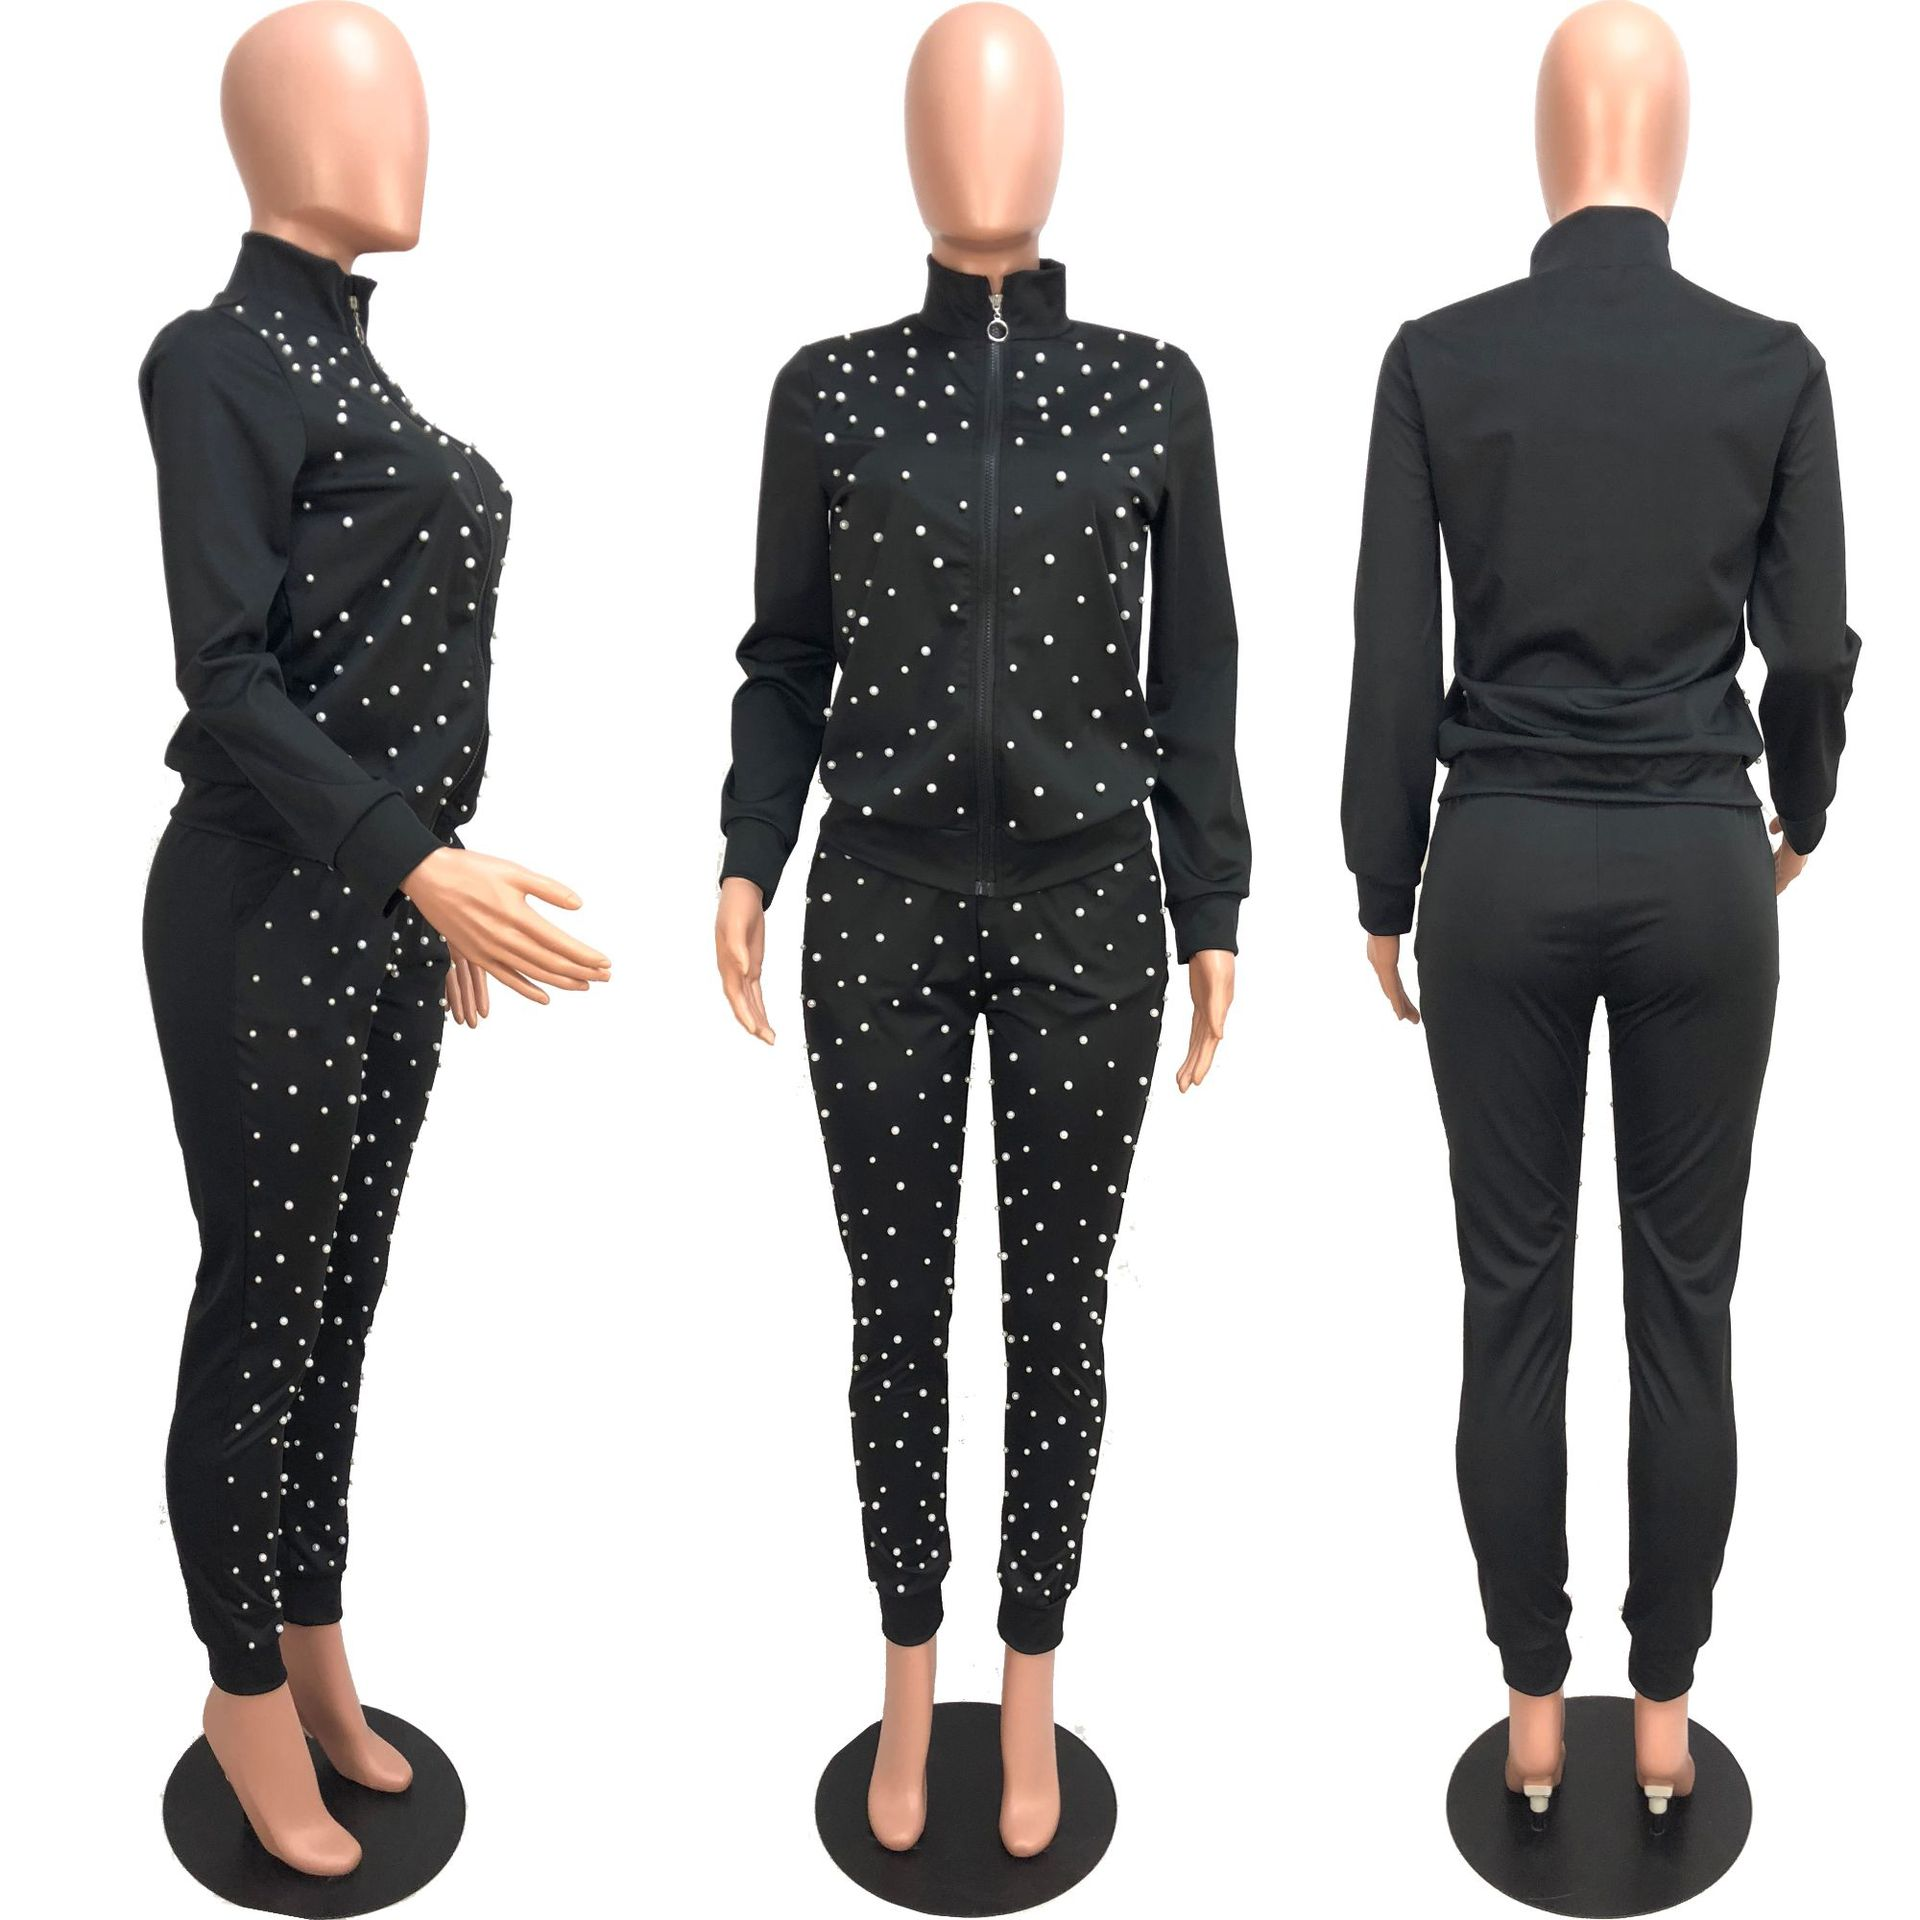 2 Piece Set Tracksuit Women Pearl Bead Zipper Long Sleeve Coat And Long Pants Women 39 s Sets Casual Sportwear Two Piece Set in Women 39 s Sets from Women 39 s Clothing